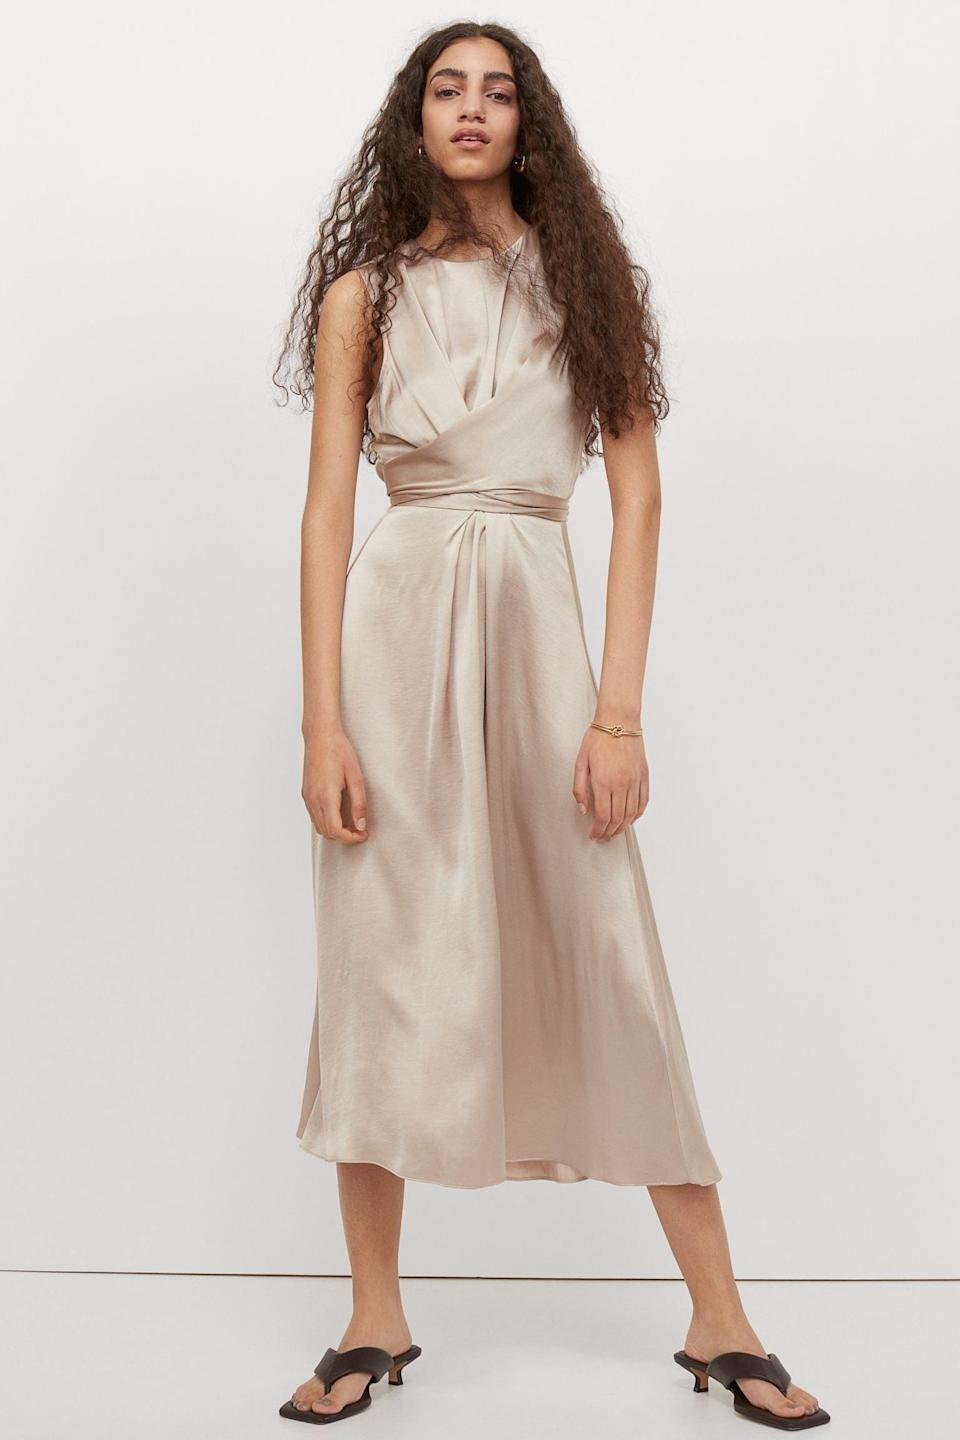 <p>If you're meeting your partner's parents, this <span>Draped Satin Dress</span> ($54, originally $60) might be the way to go. It exudes a sense of self-confidence and looks super polished.</p>